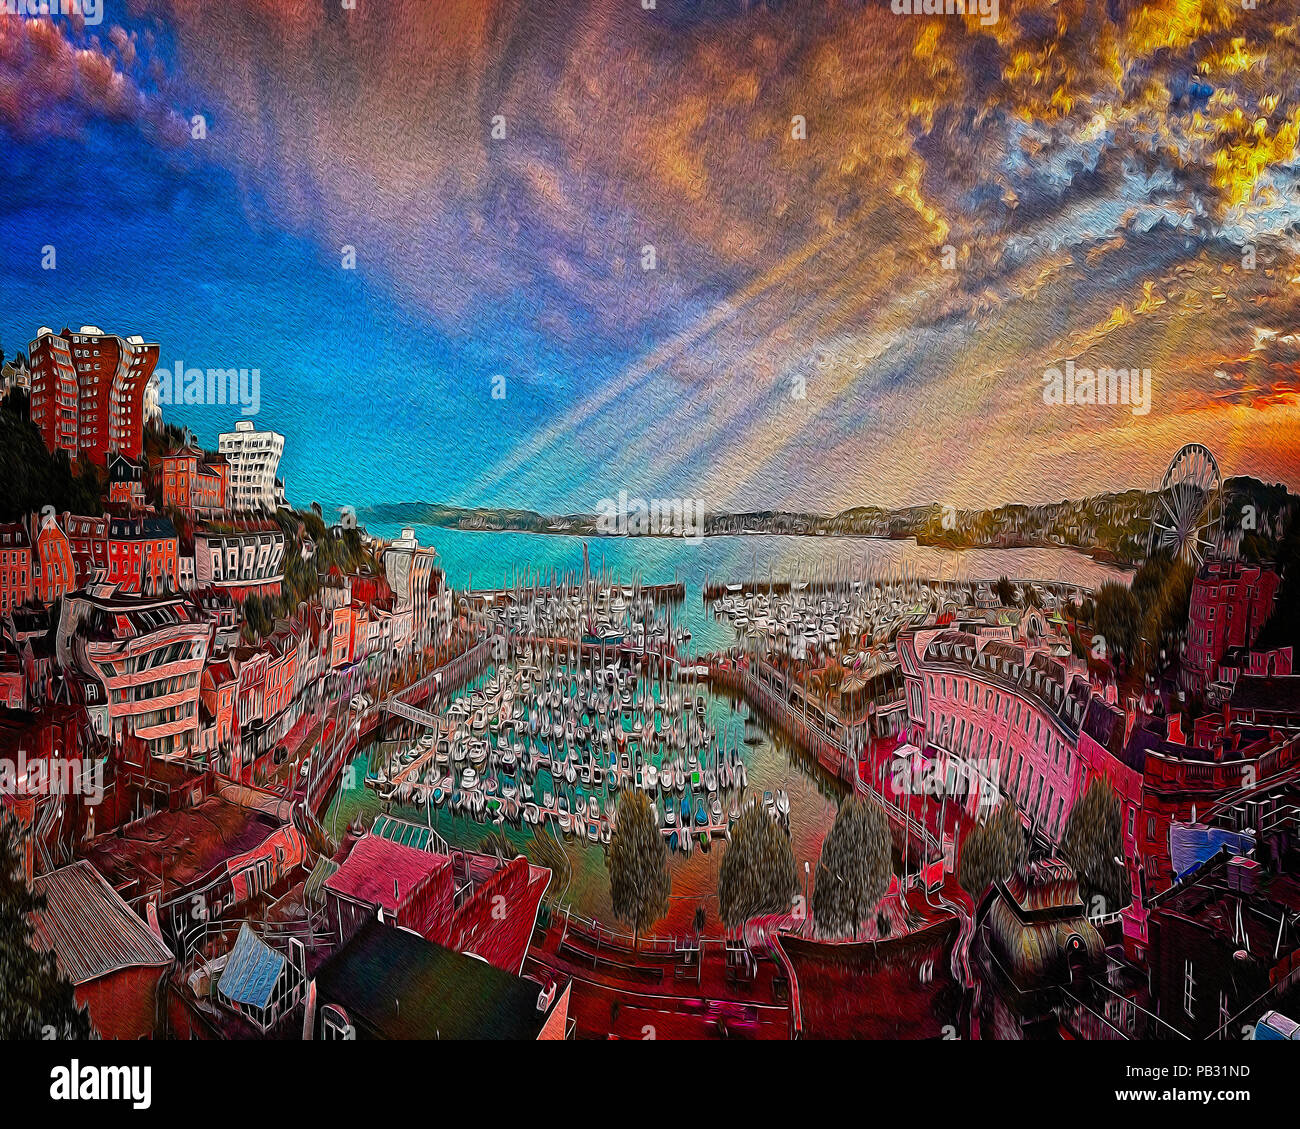 DIGITAL ART: Torquay harbour & town at sunset, Devonshire, Great Britain Stock Photo